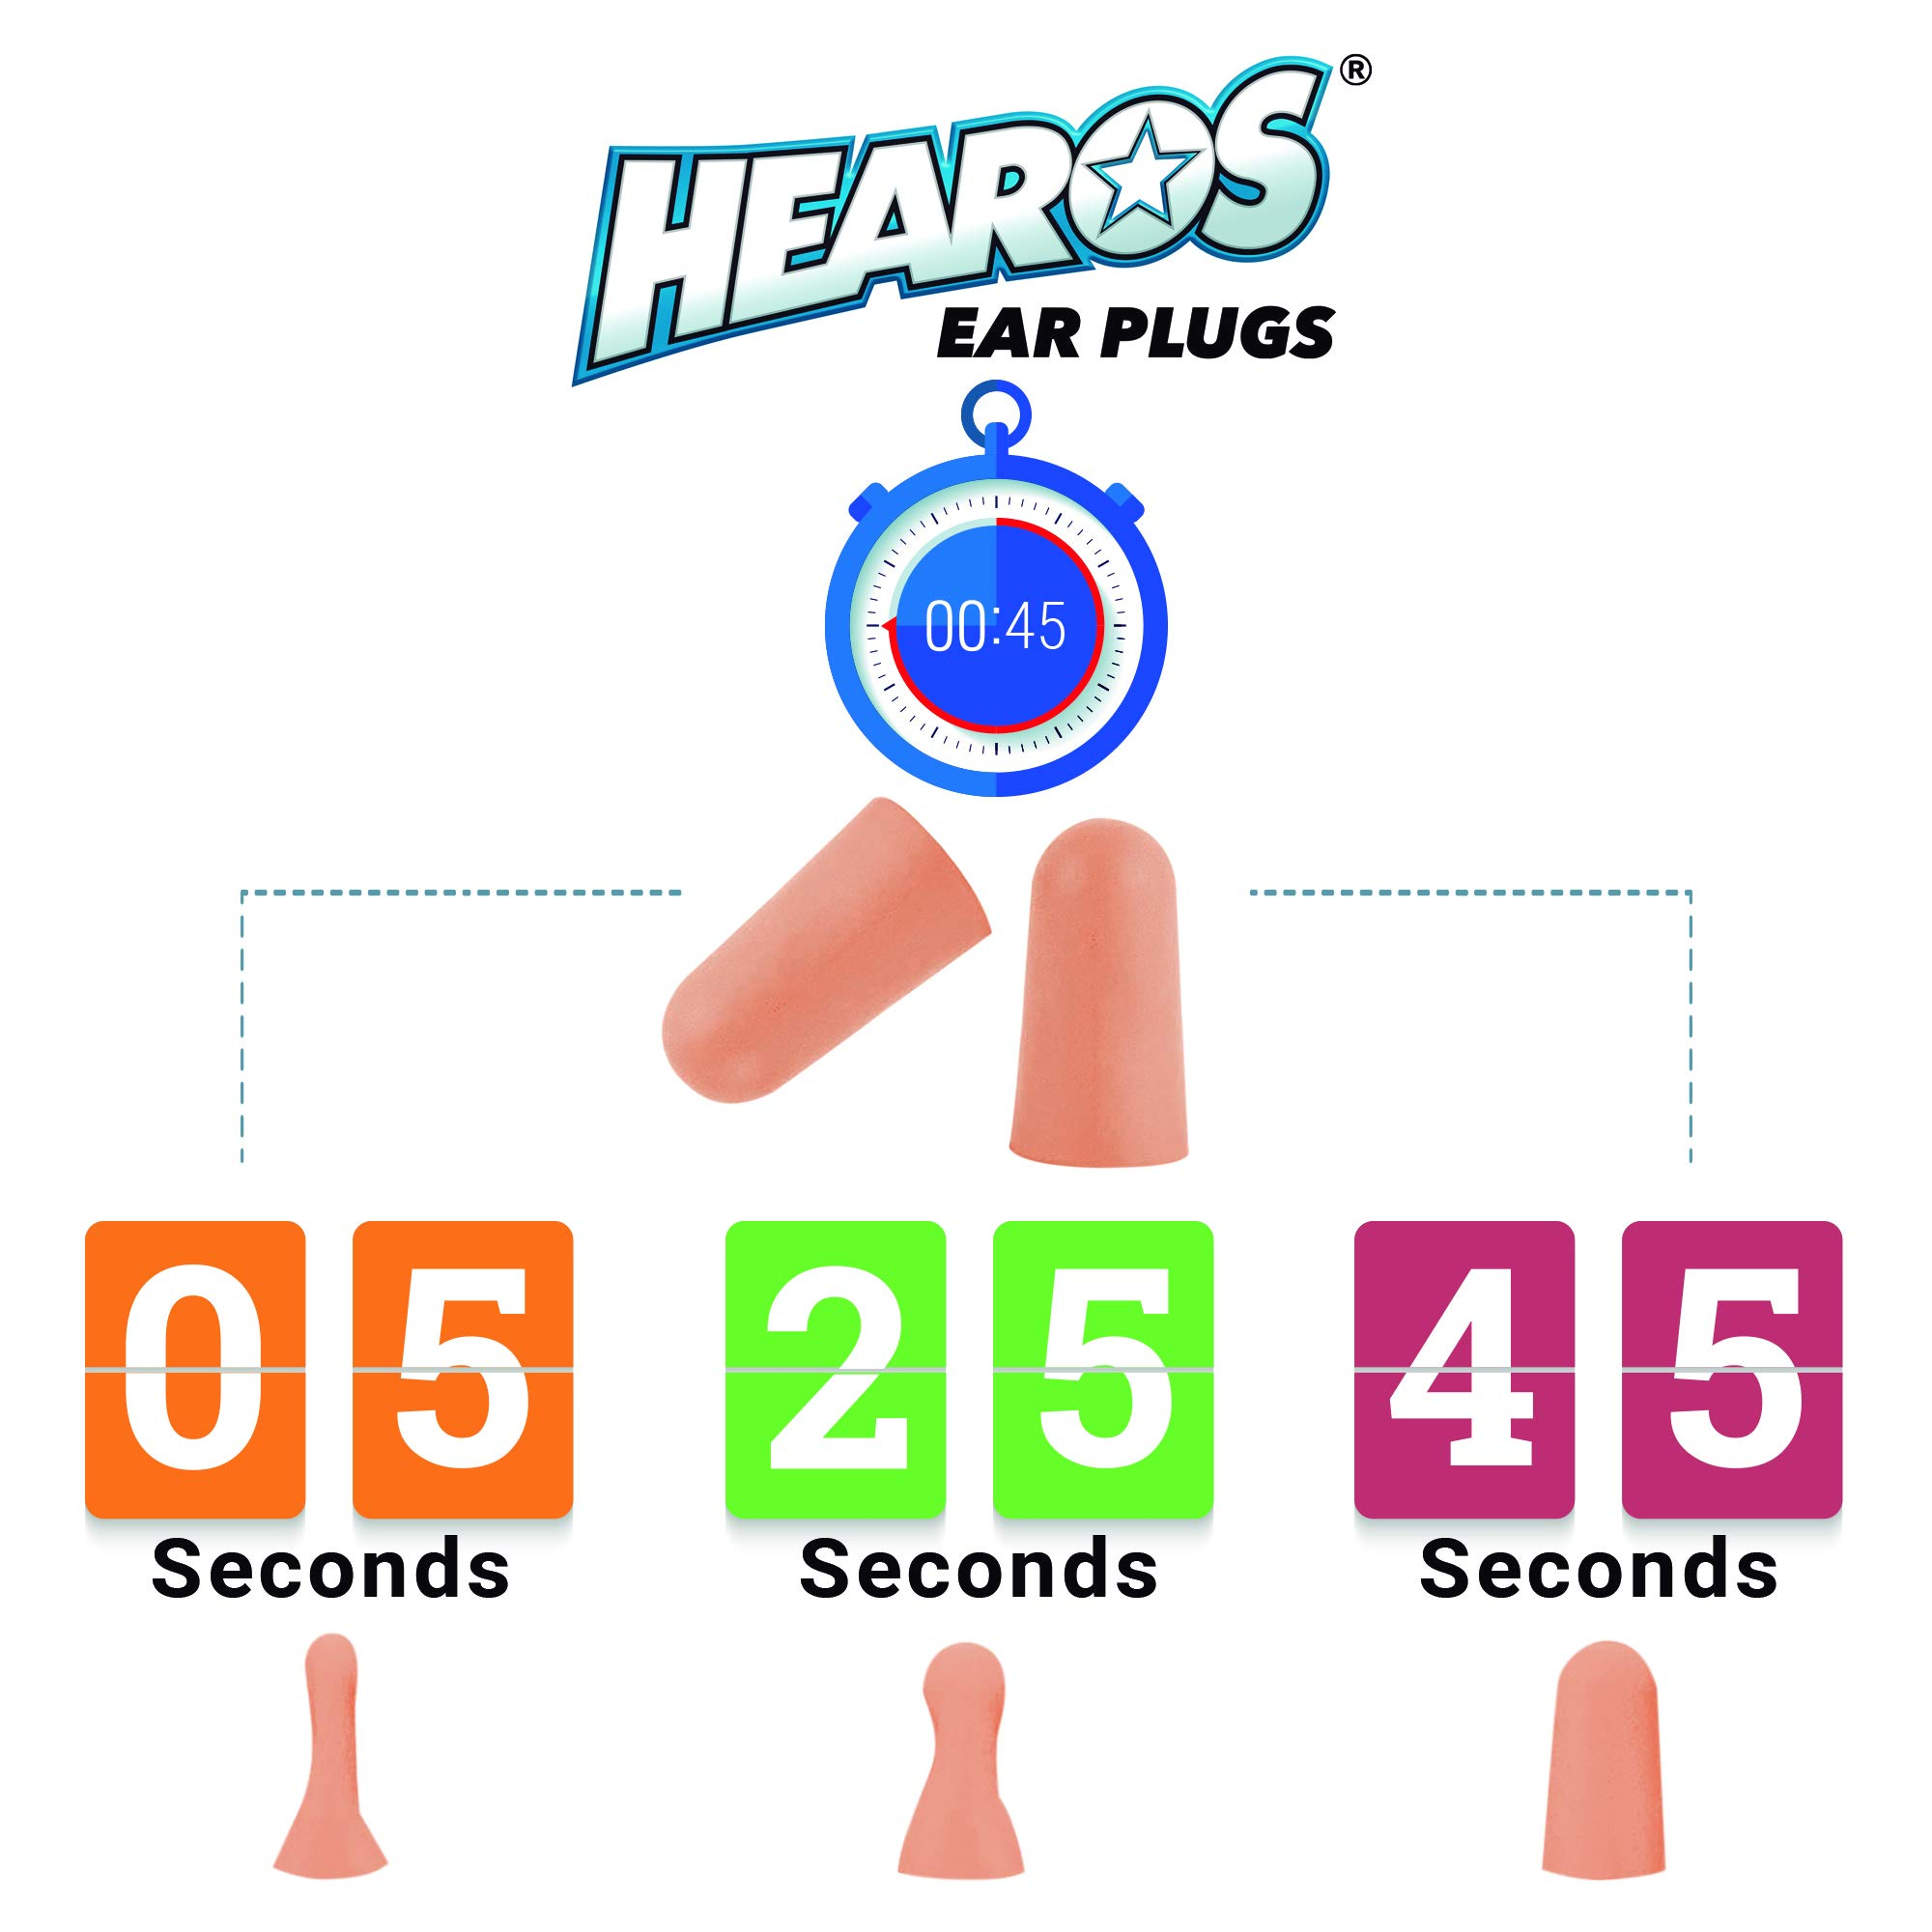 HEAROS Ultimate Softness Foam Earplugs, 32dB NRR Ear Plugs, 100 Pairs, Soft Ear Plugs Noise Reduction for Hearing Protection, Sleeping, Snoring, Working, Shooting,